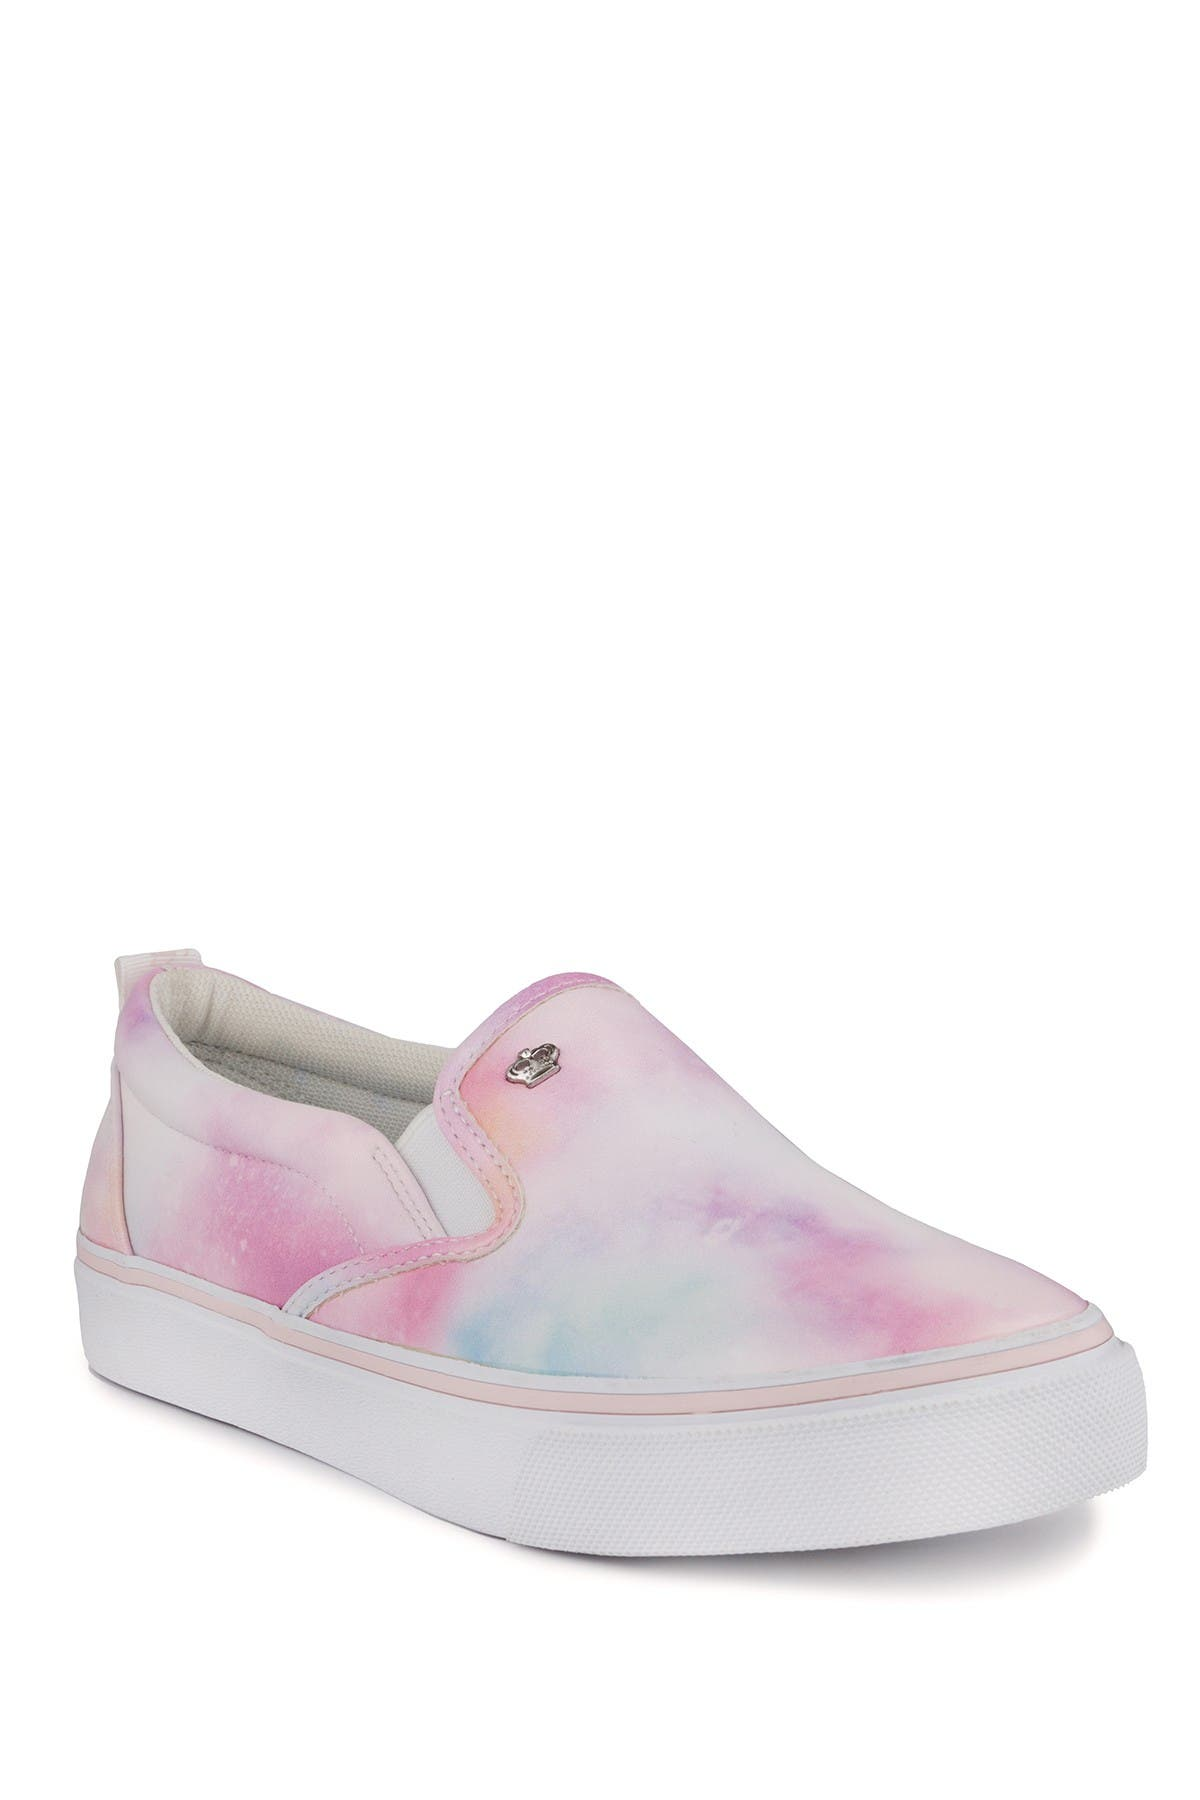 Image of Juicy Couture Charmed Glitter Slip-On Sneaker